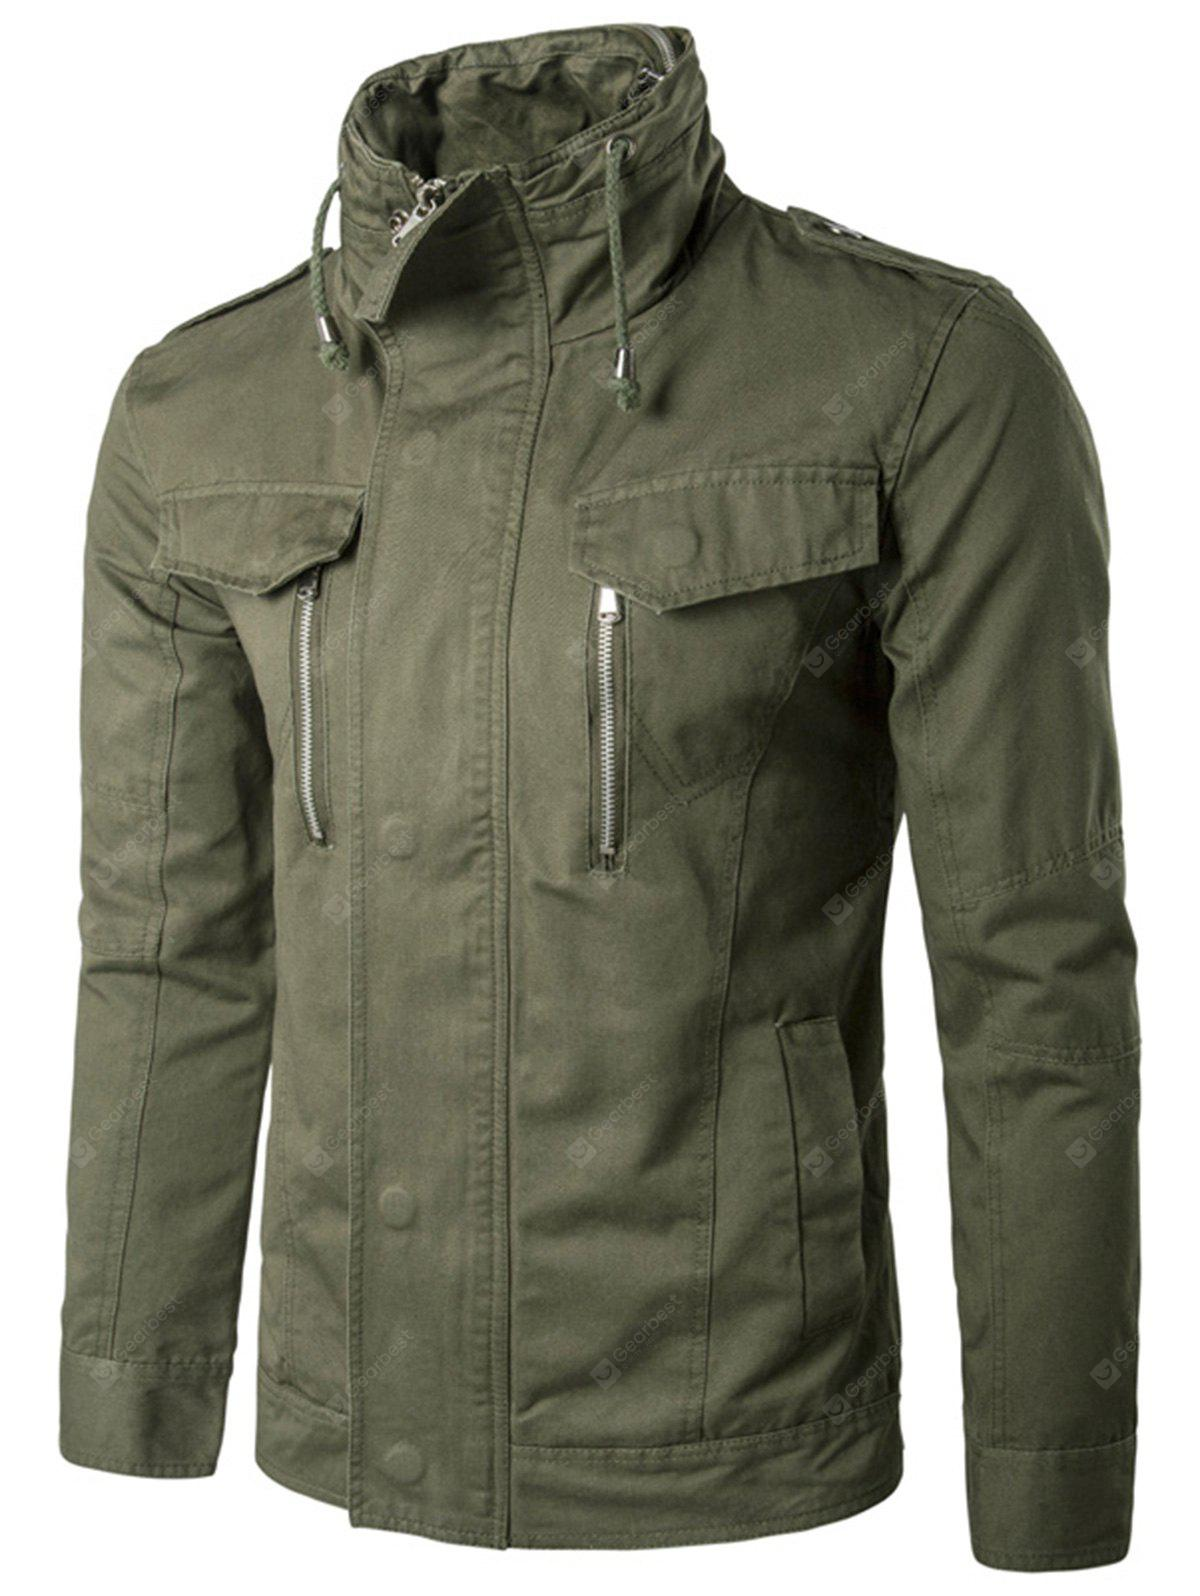 Stand Collar Drawstring Zip Up Cargo Jacket